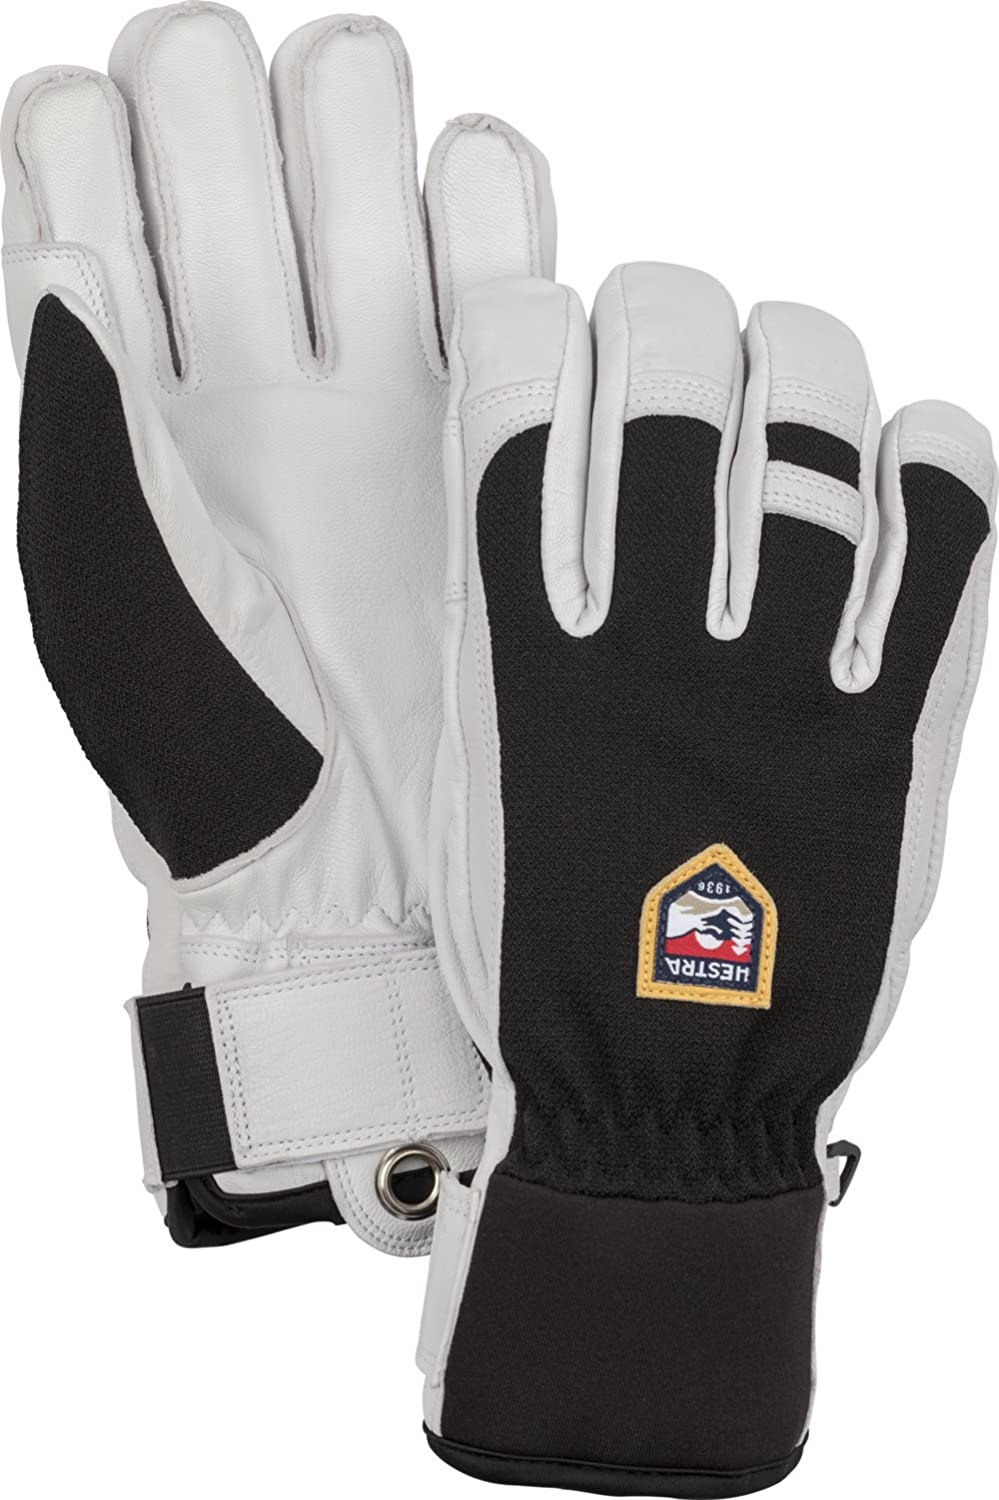 Image of Cold Weather Gloves Hestra Ski Army Leather Patrol Winter Cold Weather Glove